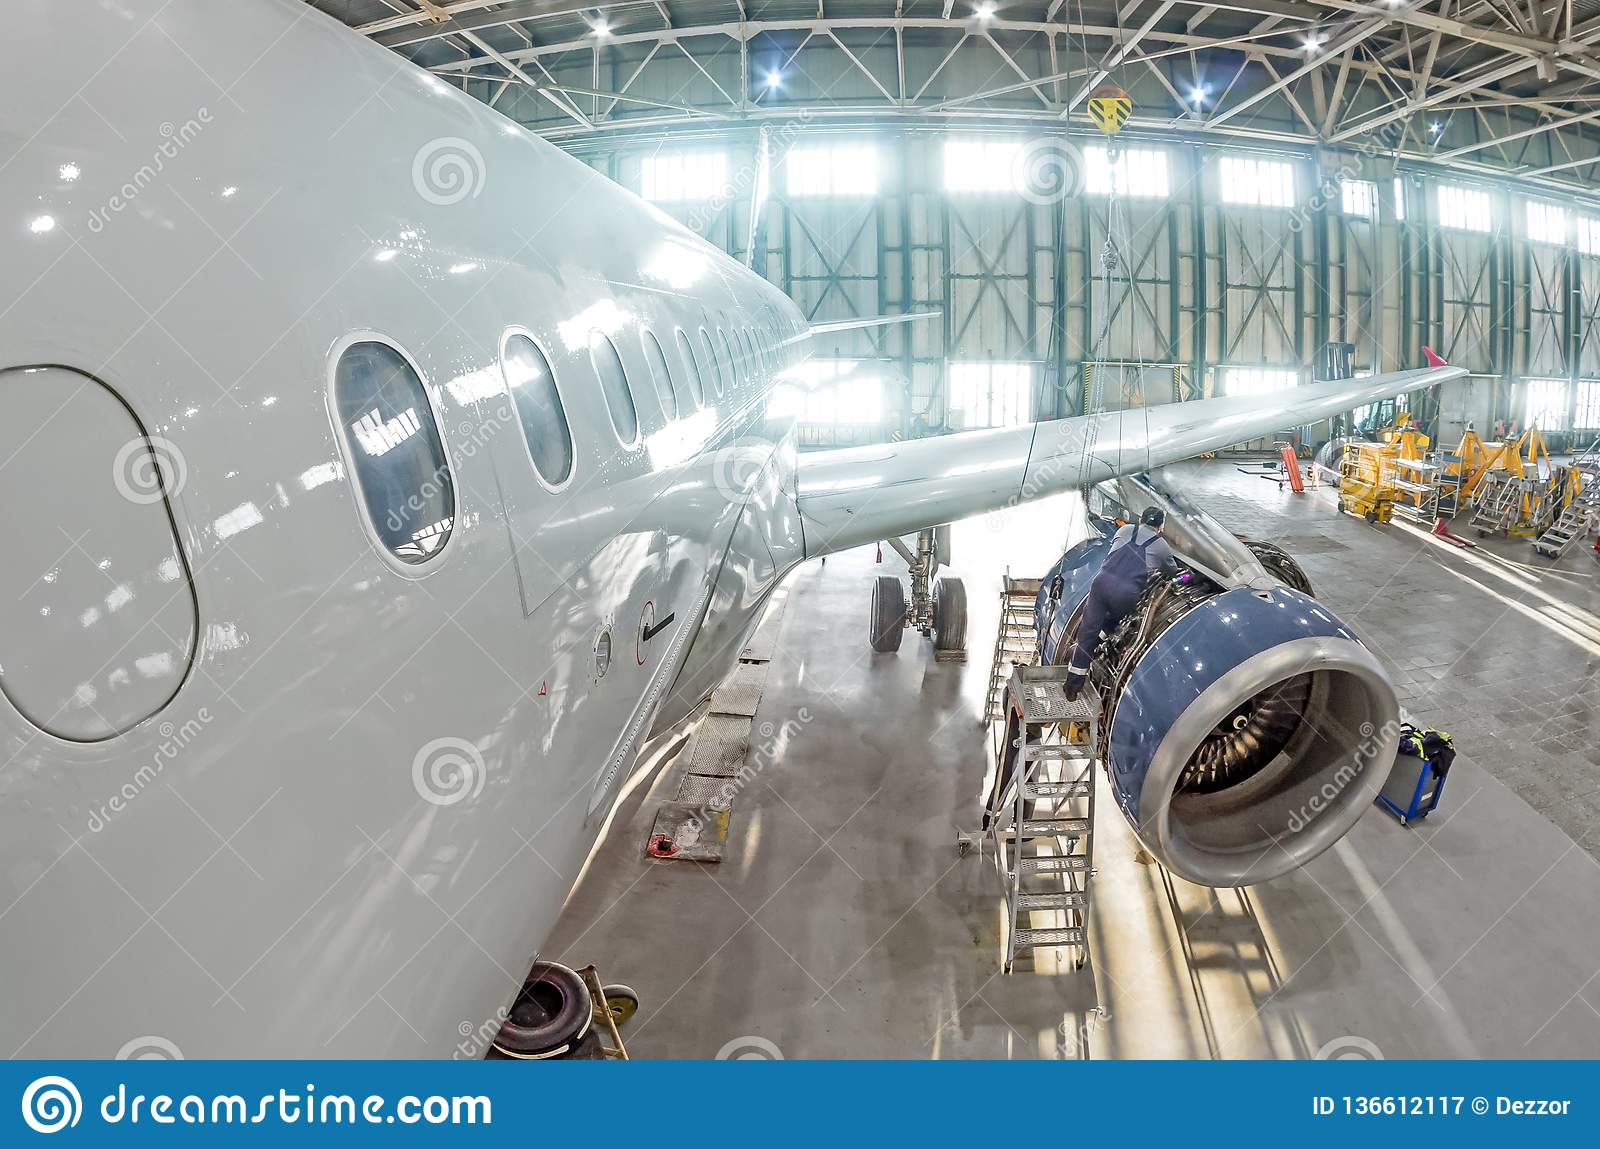 Technical specialists and aircraft technicians install the reverse engine after scheduled service.